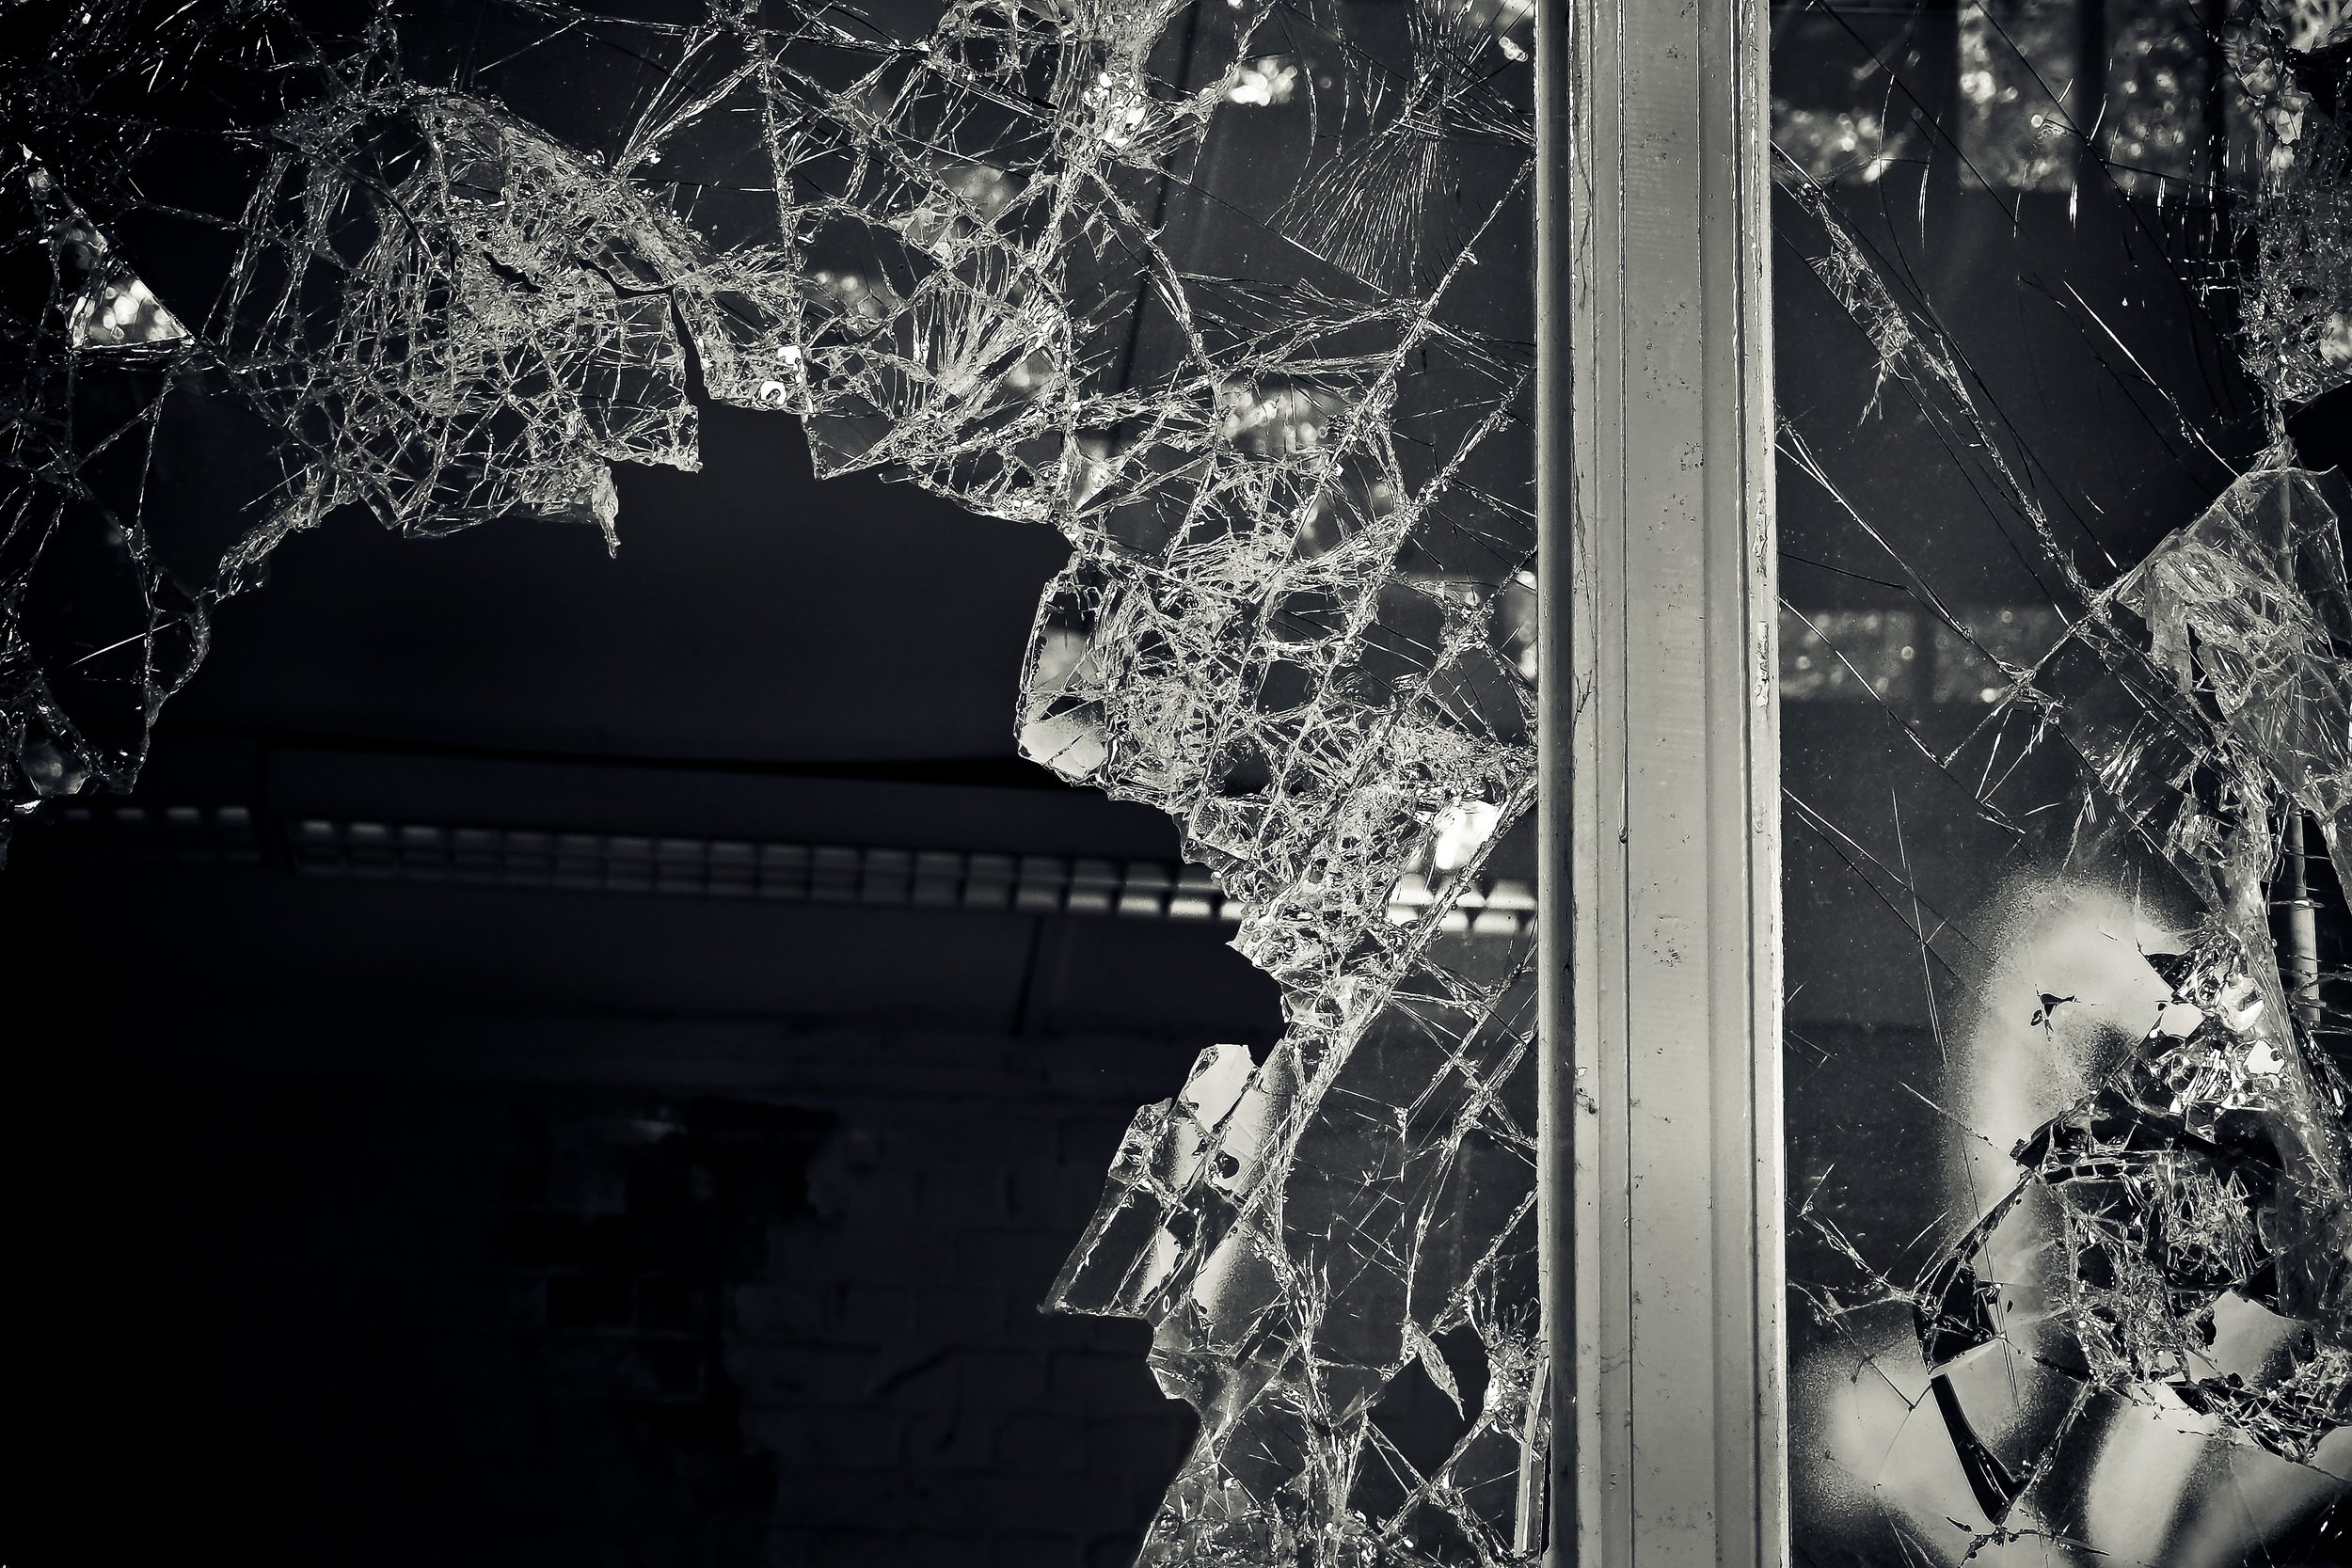 Ways to Safeguard Your Home Against Burglary - Home Advisor has 28 great tips for protecting your home against burglary and other crimes. You can safeguard your home against burglary by paying special attention to the inside and outside of your home. Also, you can take special precautions while you're away on vacation or extended trips.Check out the article!